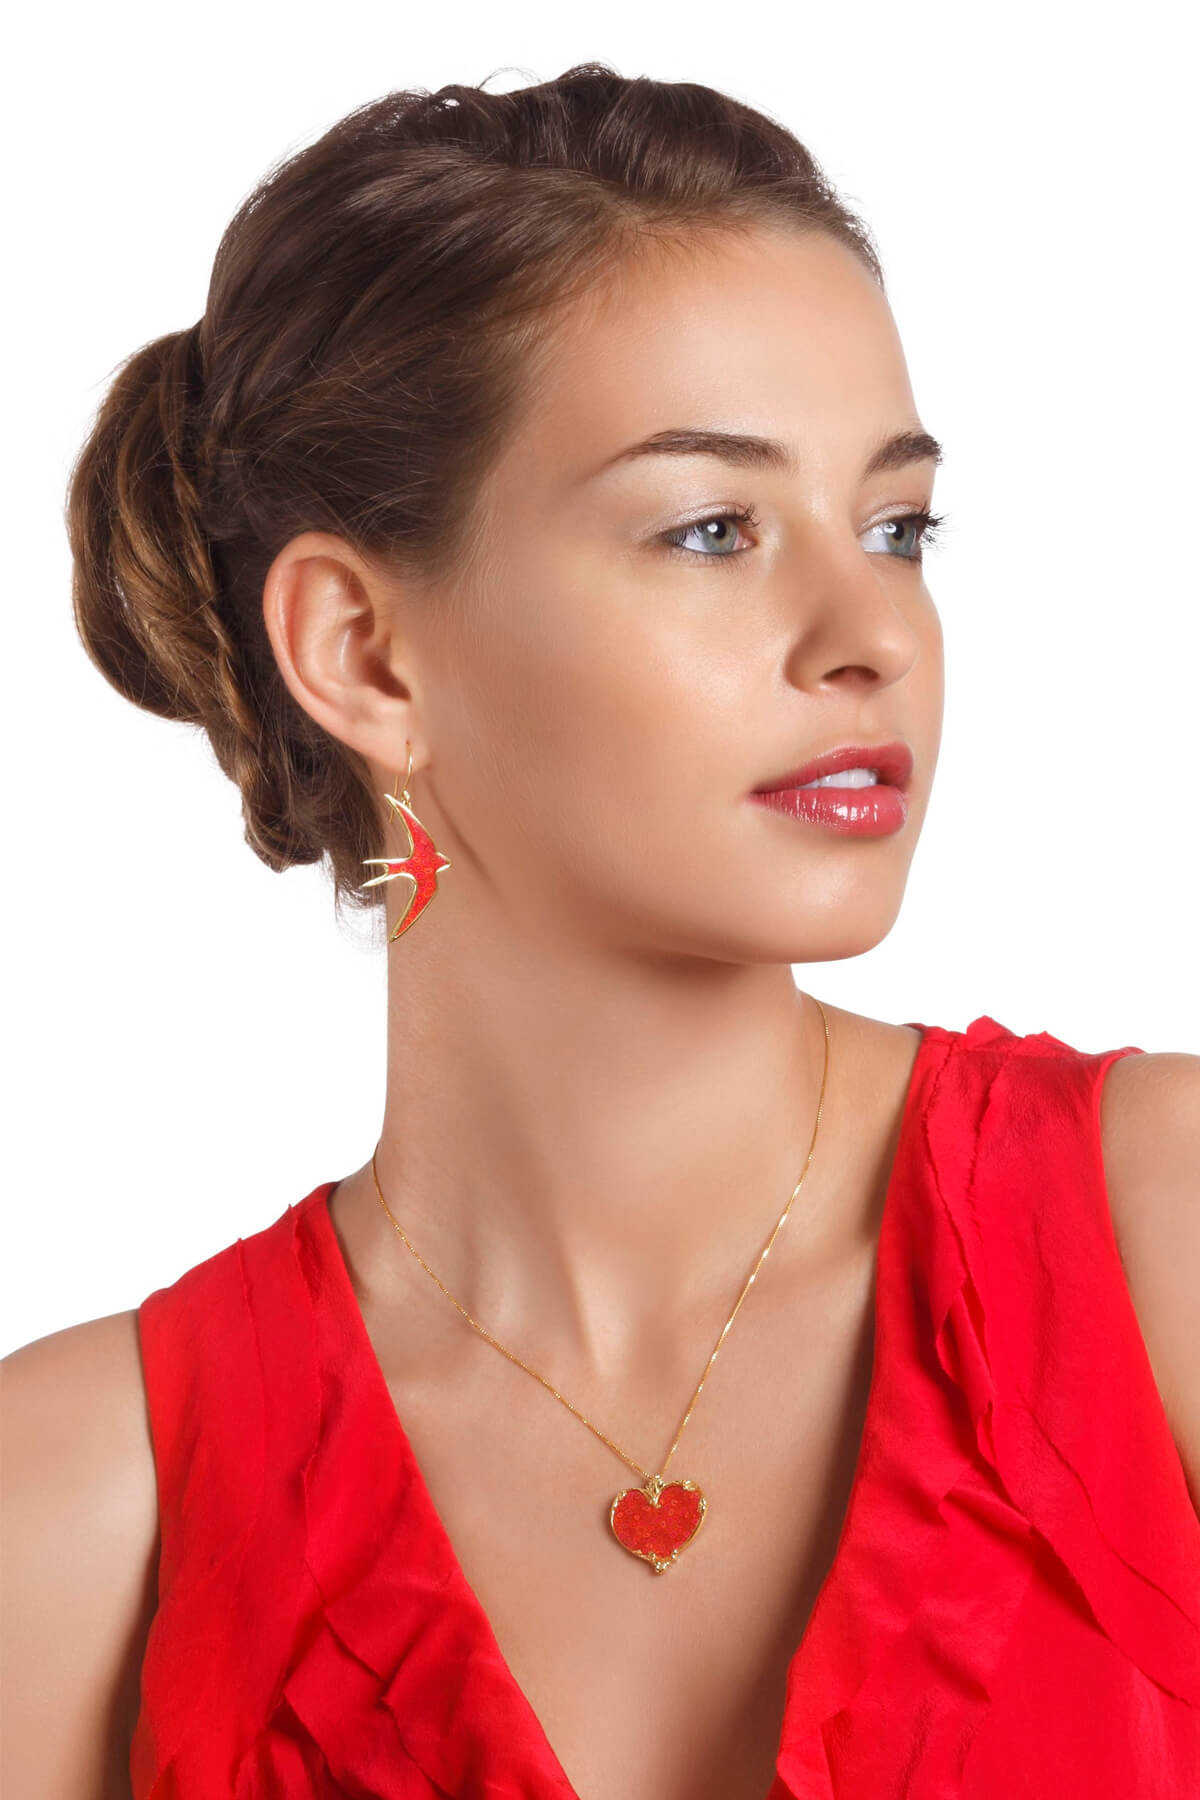 Handmade Vermeil Heart Art Nuvo Necklace & Swallow Earrings  – Red Coral Pattern